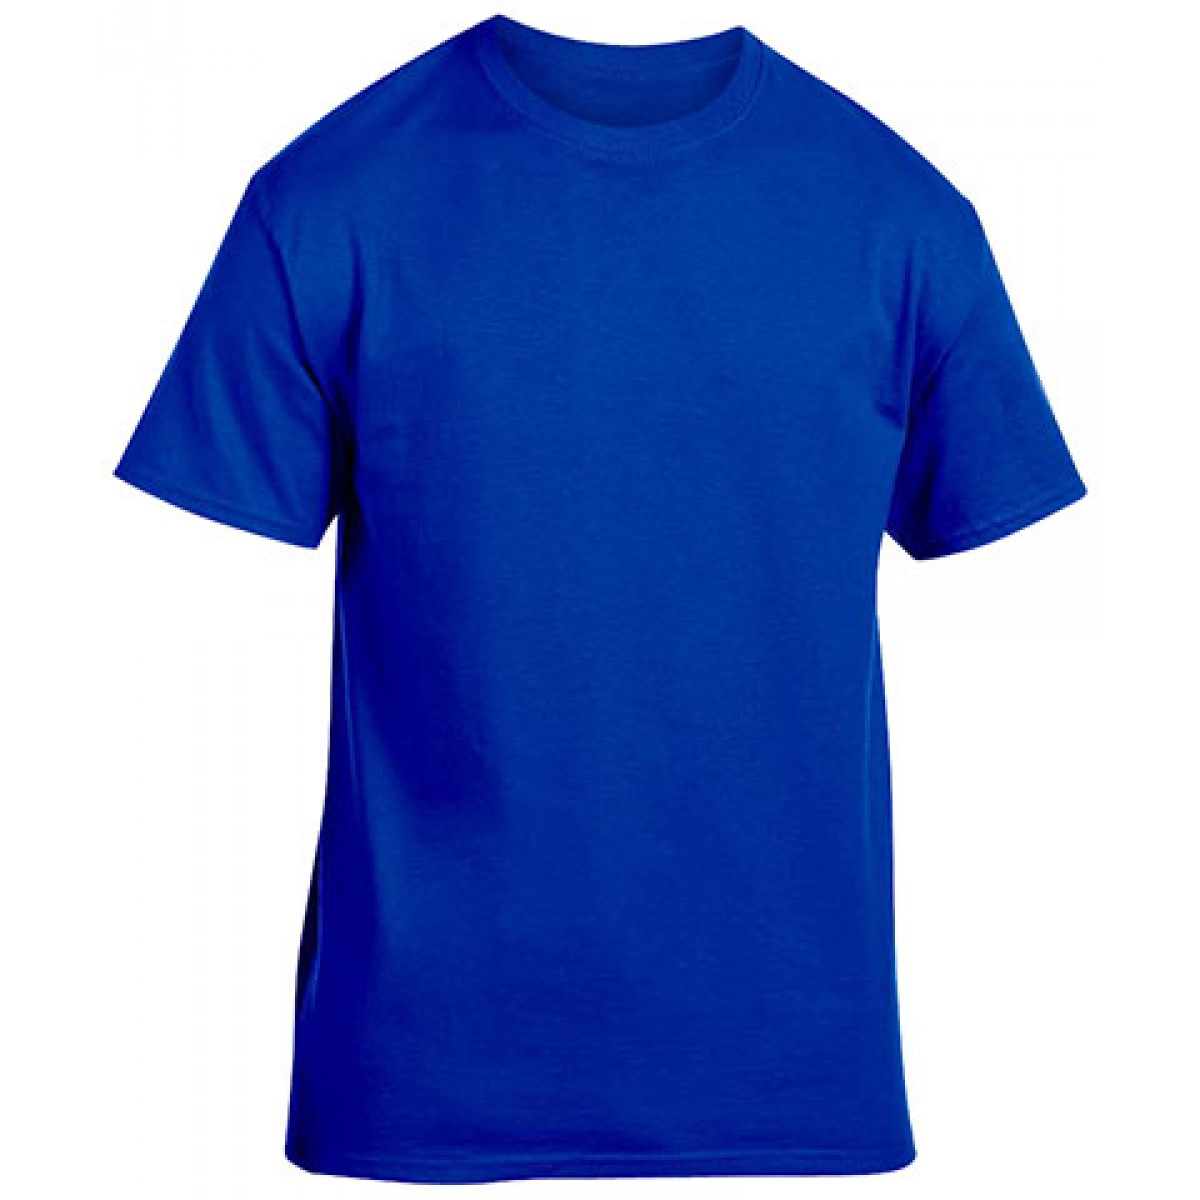 Heavy Cotton Activewear T-Shirt-Royal Blue-M